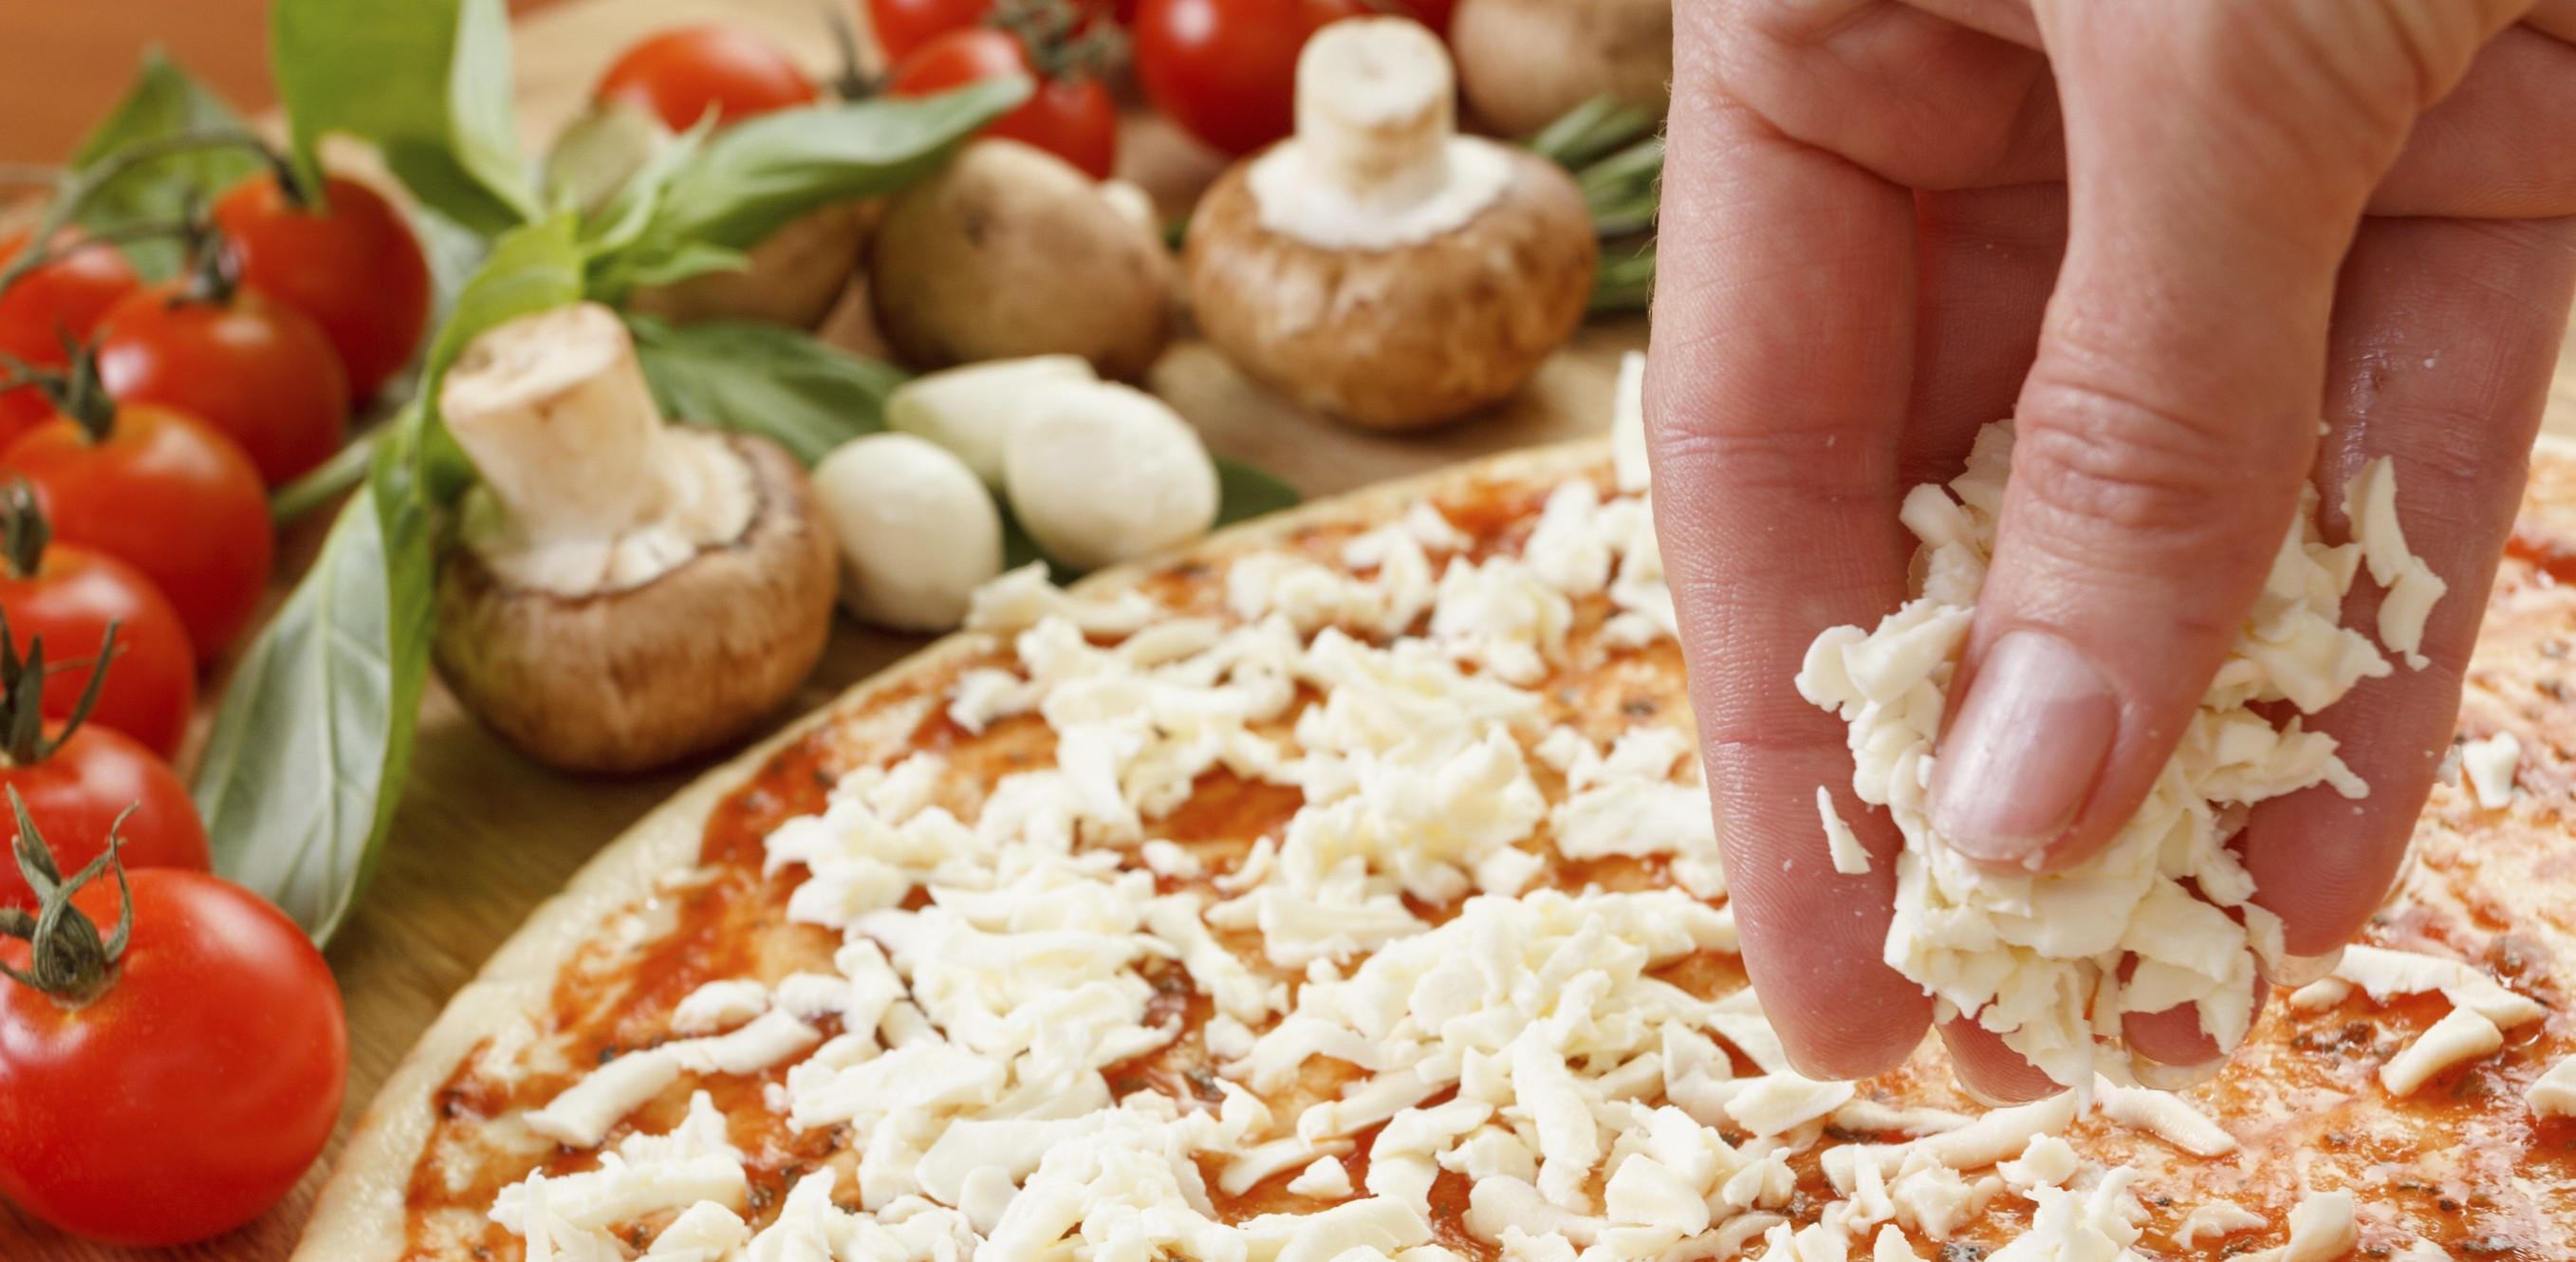 Spreading mozzarella on a pizza with pizza toppings in the background.